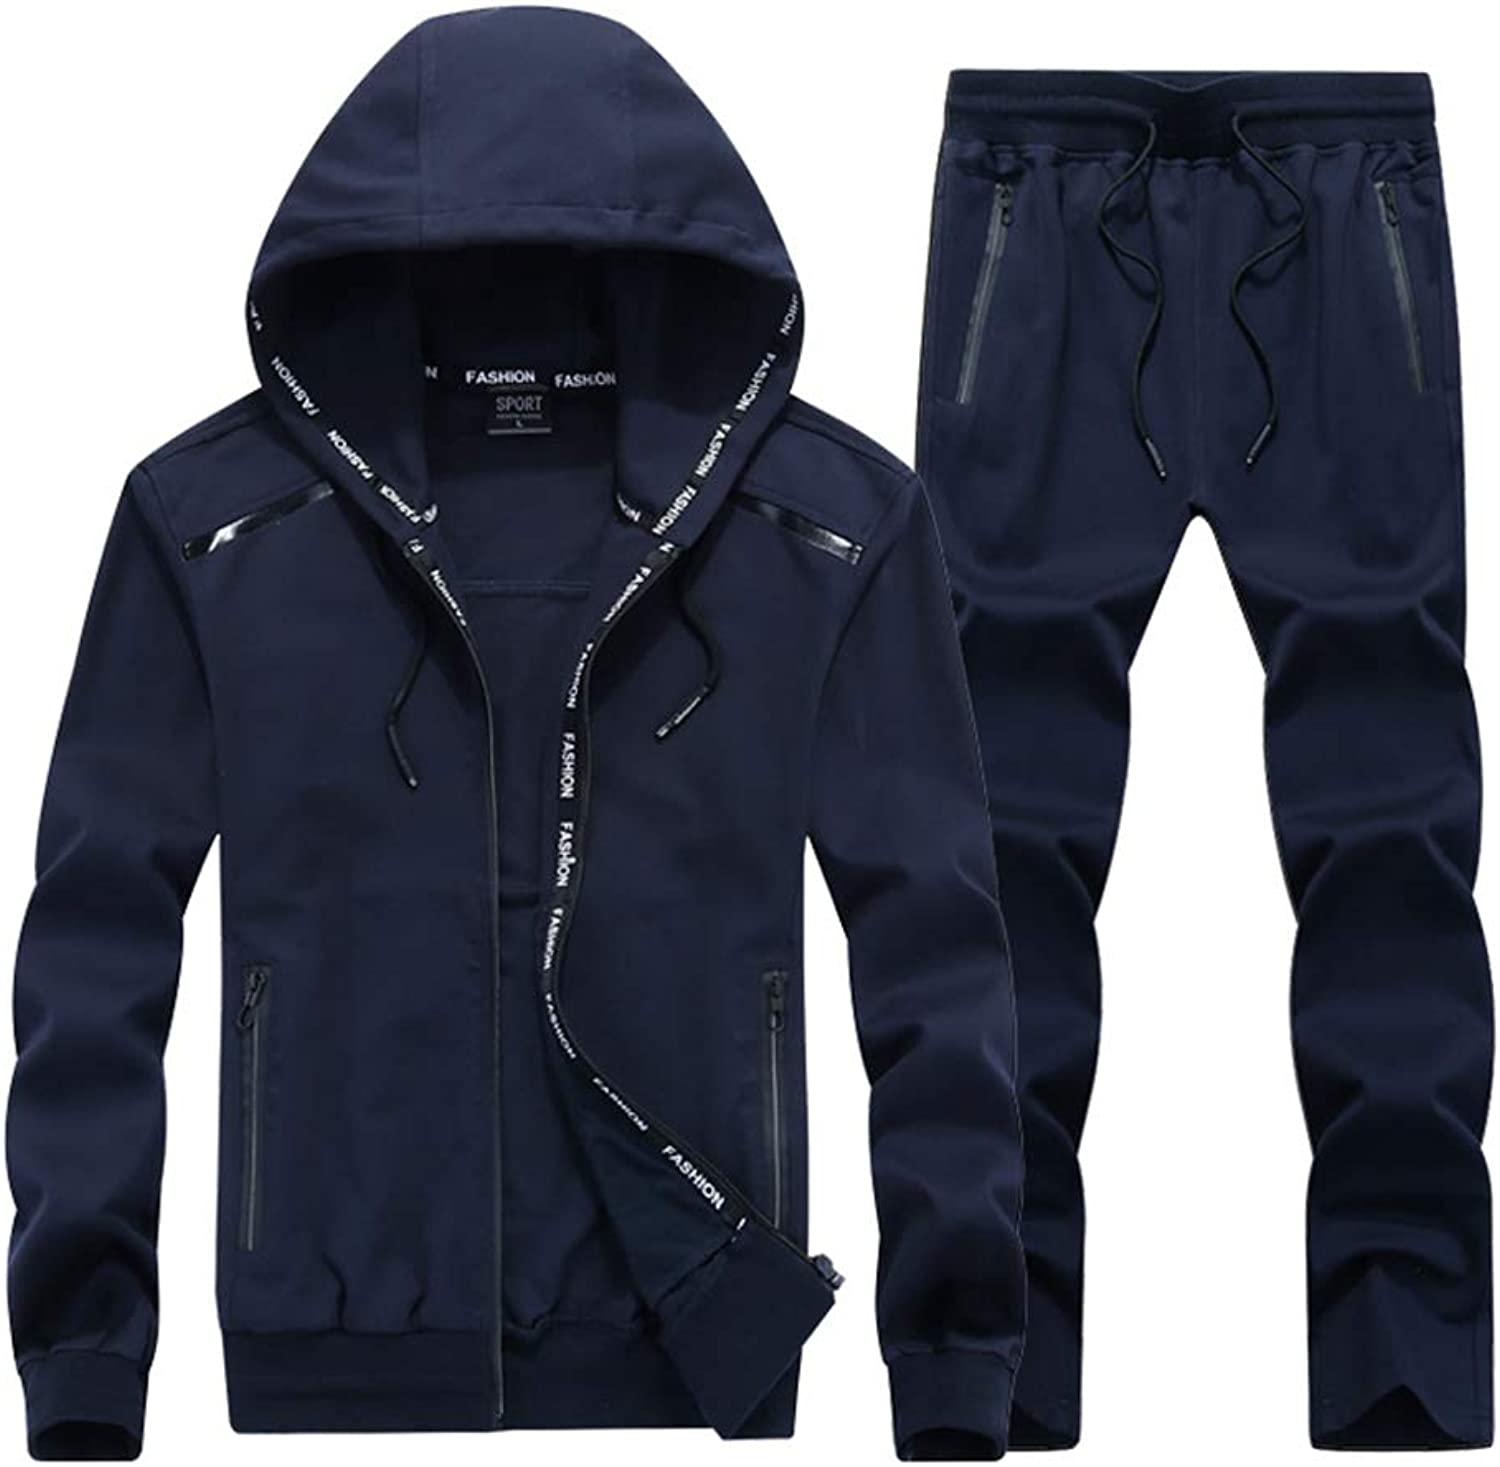 Coloing Men's Autumn Winter Hooded Windproof Running Sport Suit Large Size 8XL9XL Fitnes